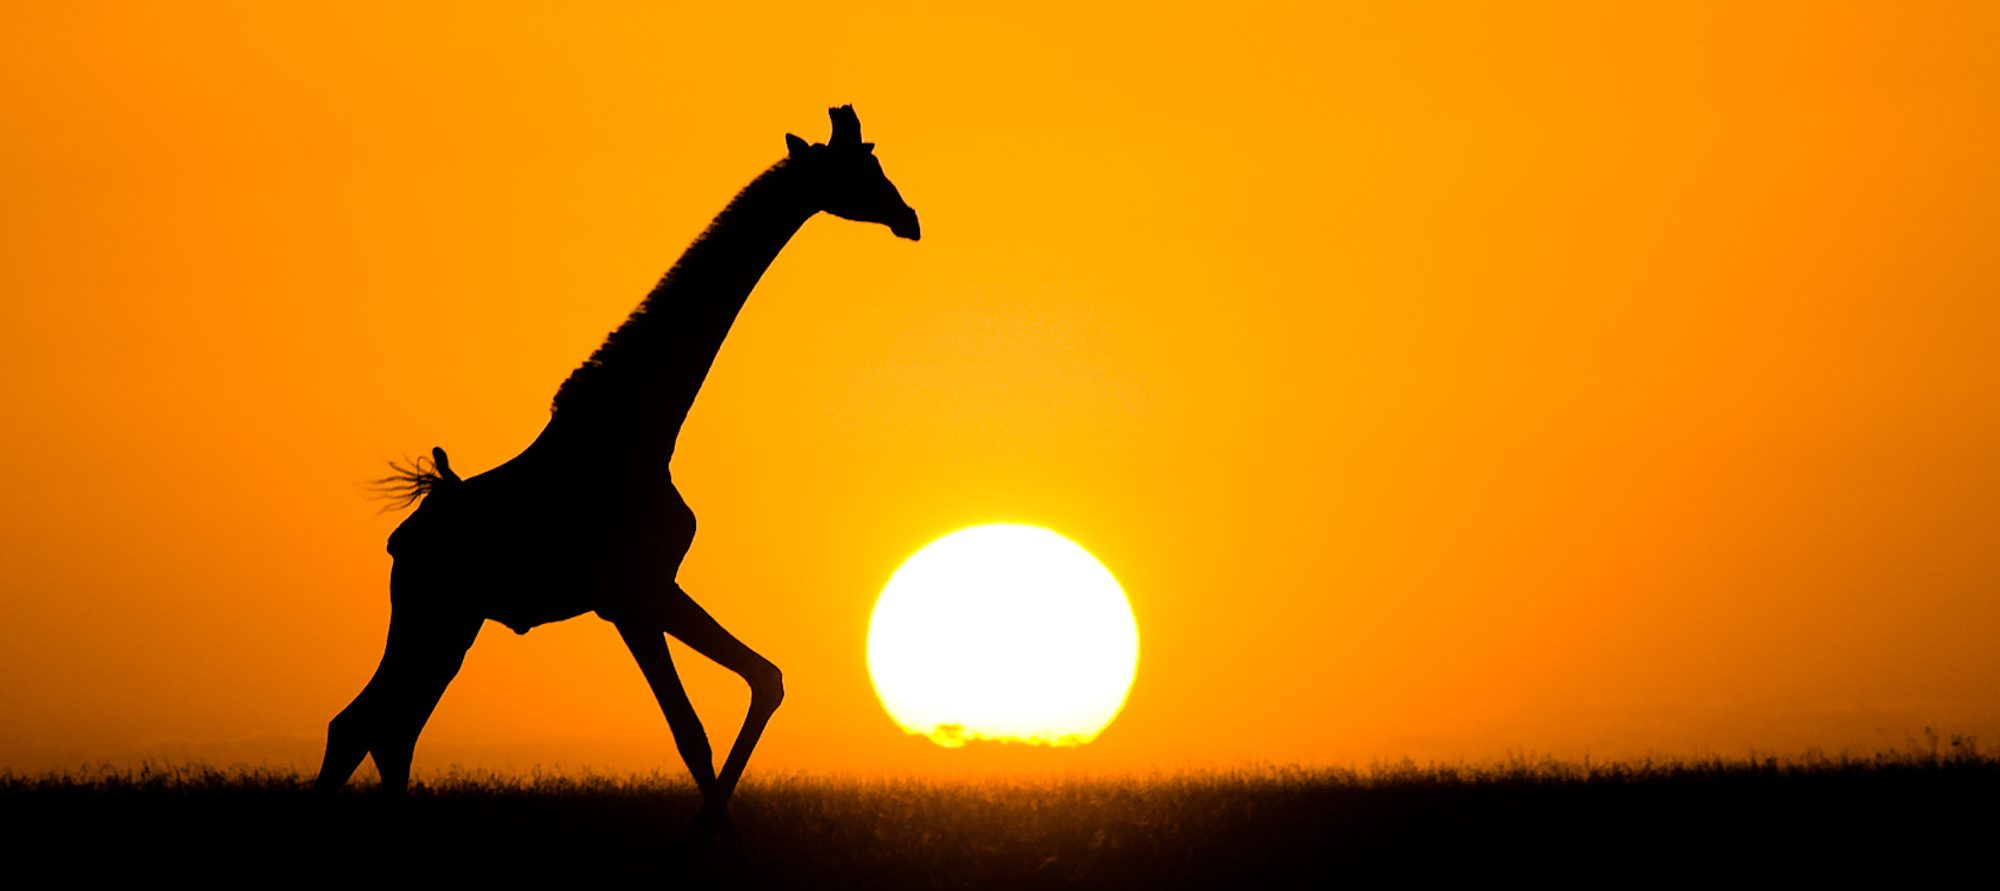 giraffe galloping across the horizon backlit by the sun at sunset. the sky is orange